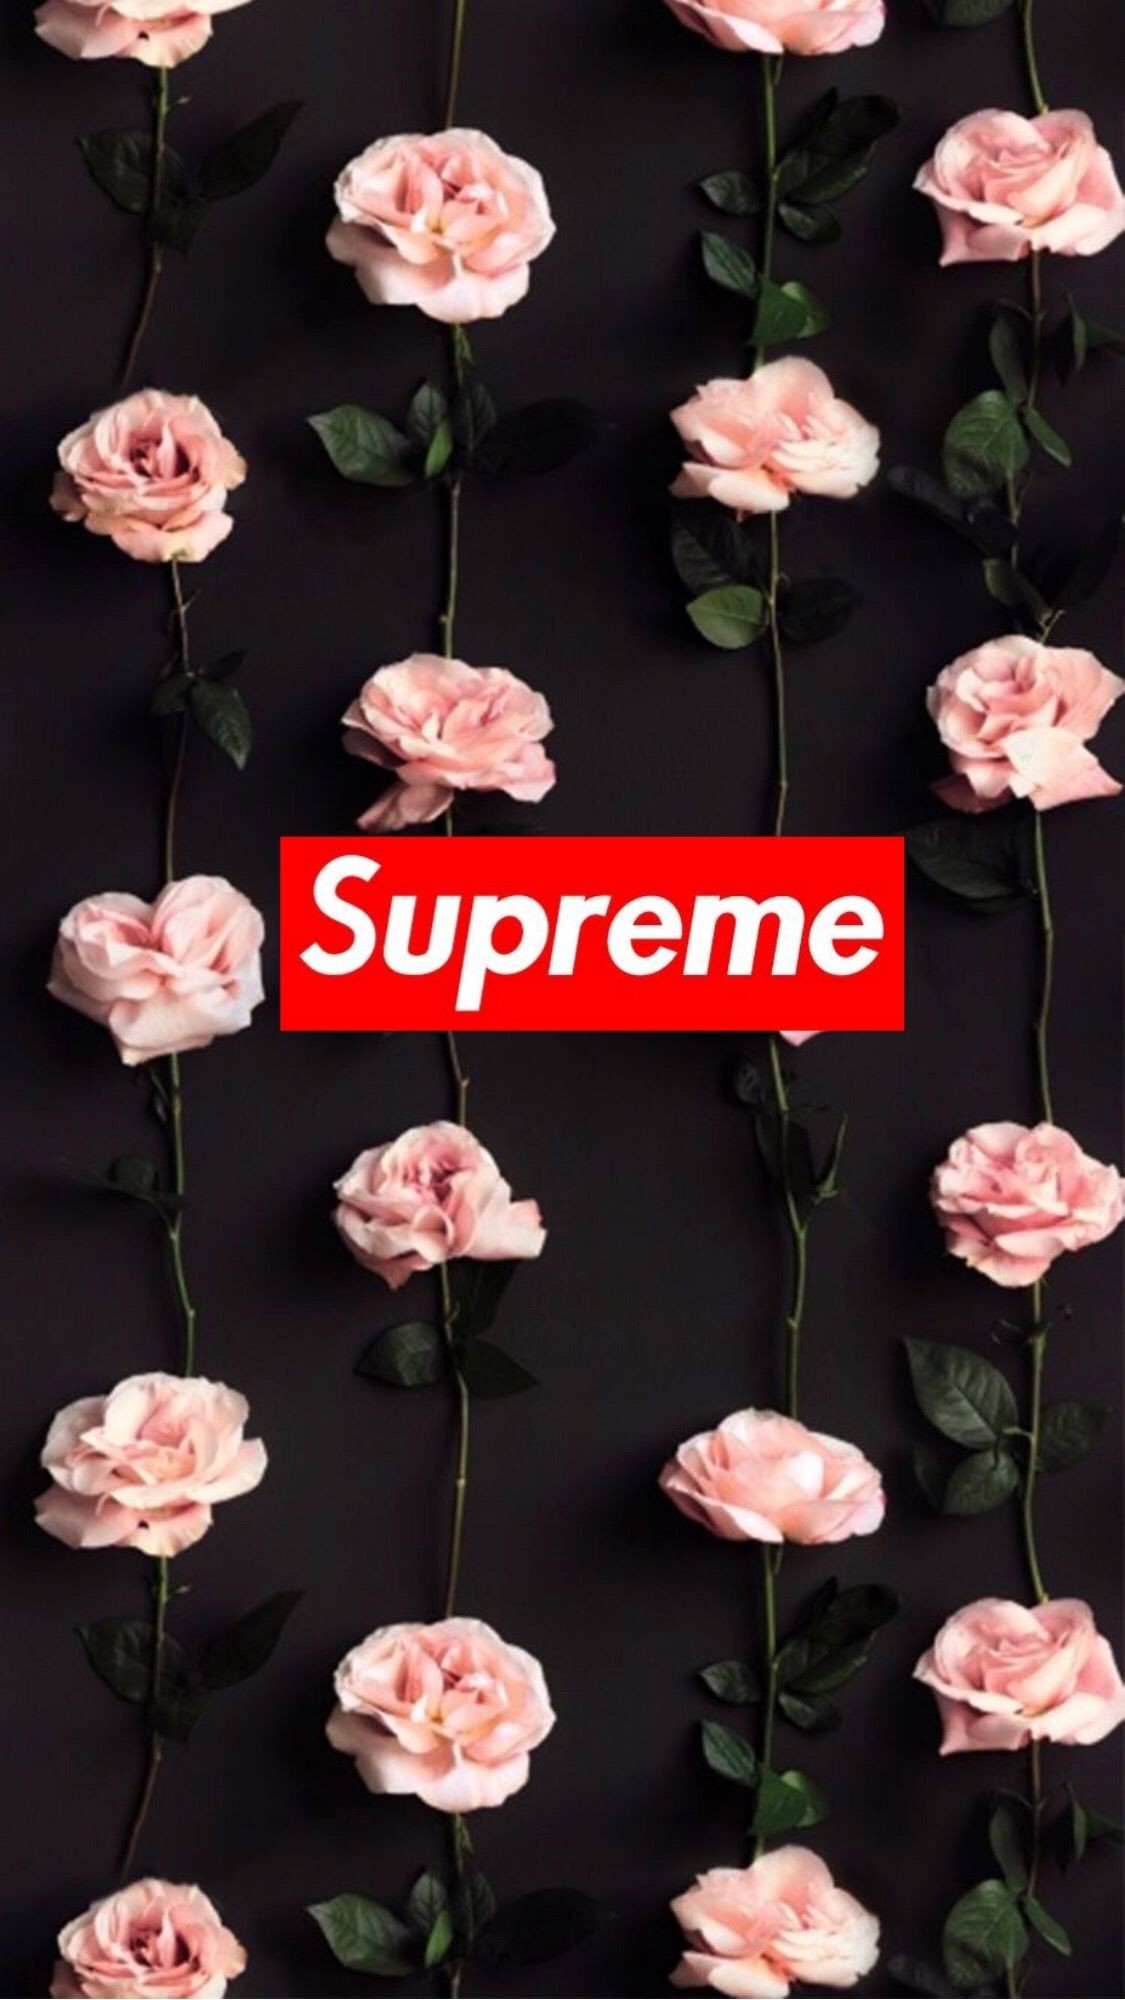 51 Supreme Floral Wallpaper On Wallpapersafari